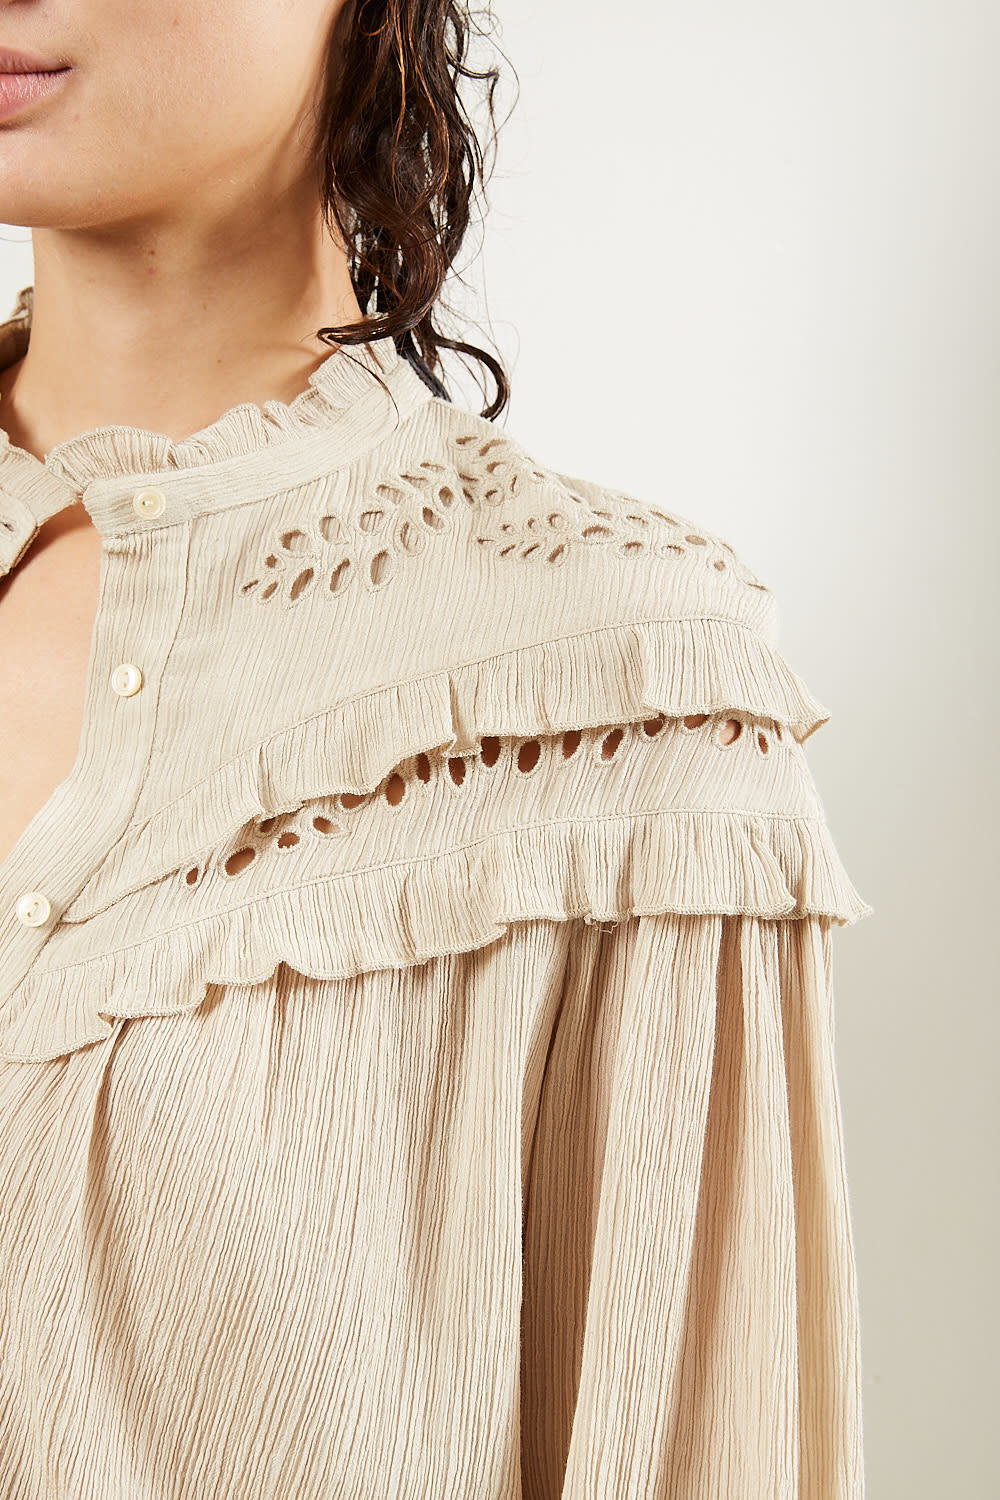 Etoile Isabel Marant - Izae light embroidered top